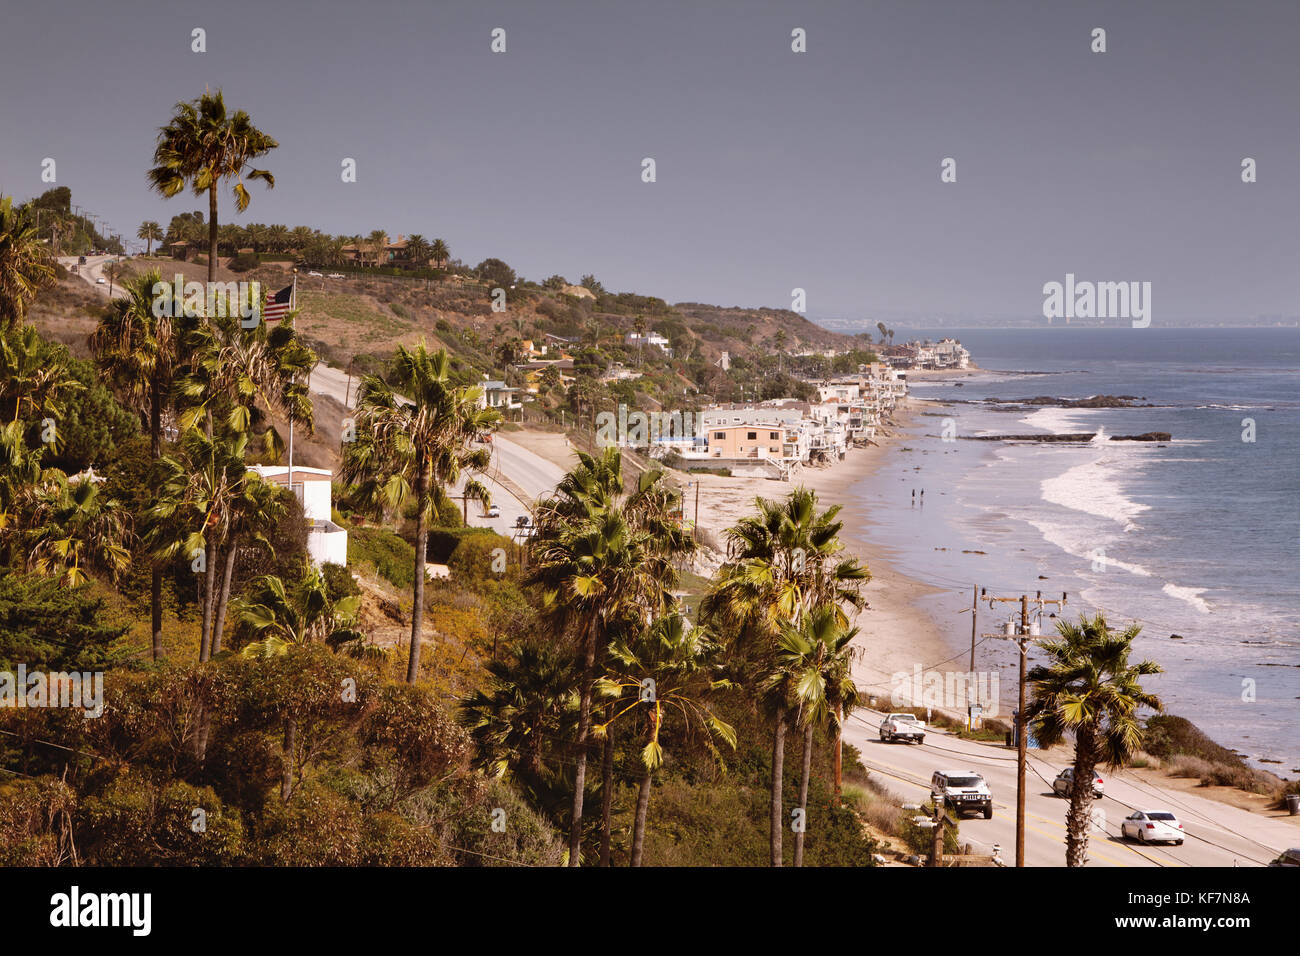 Malibu Coastline Pacific Coast Highway Stock Photos